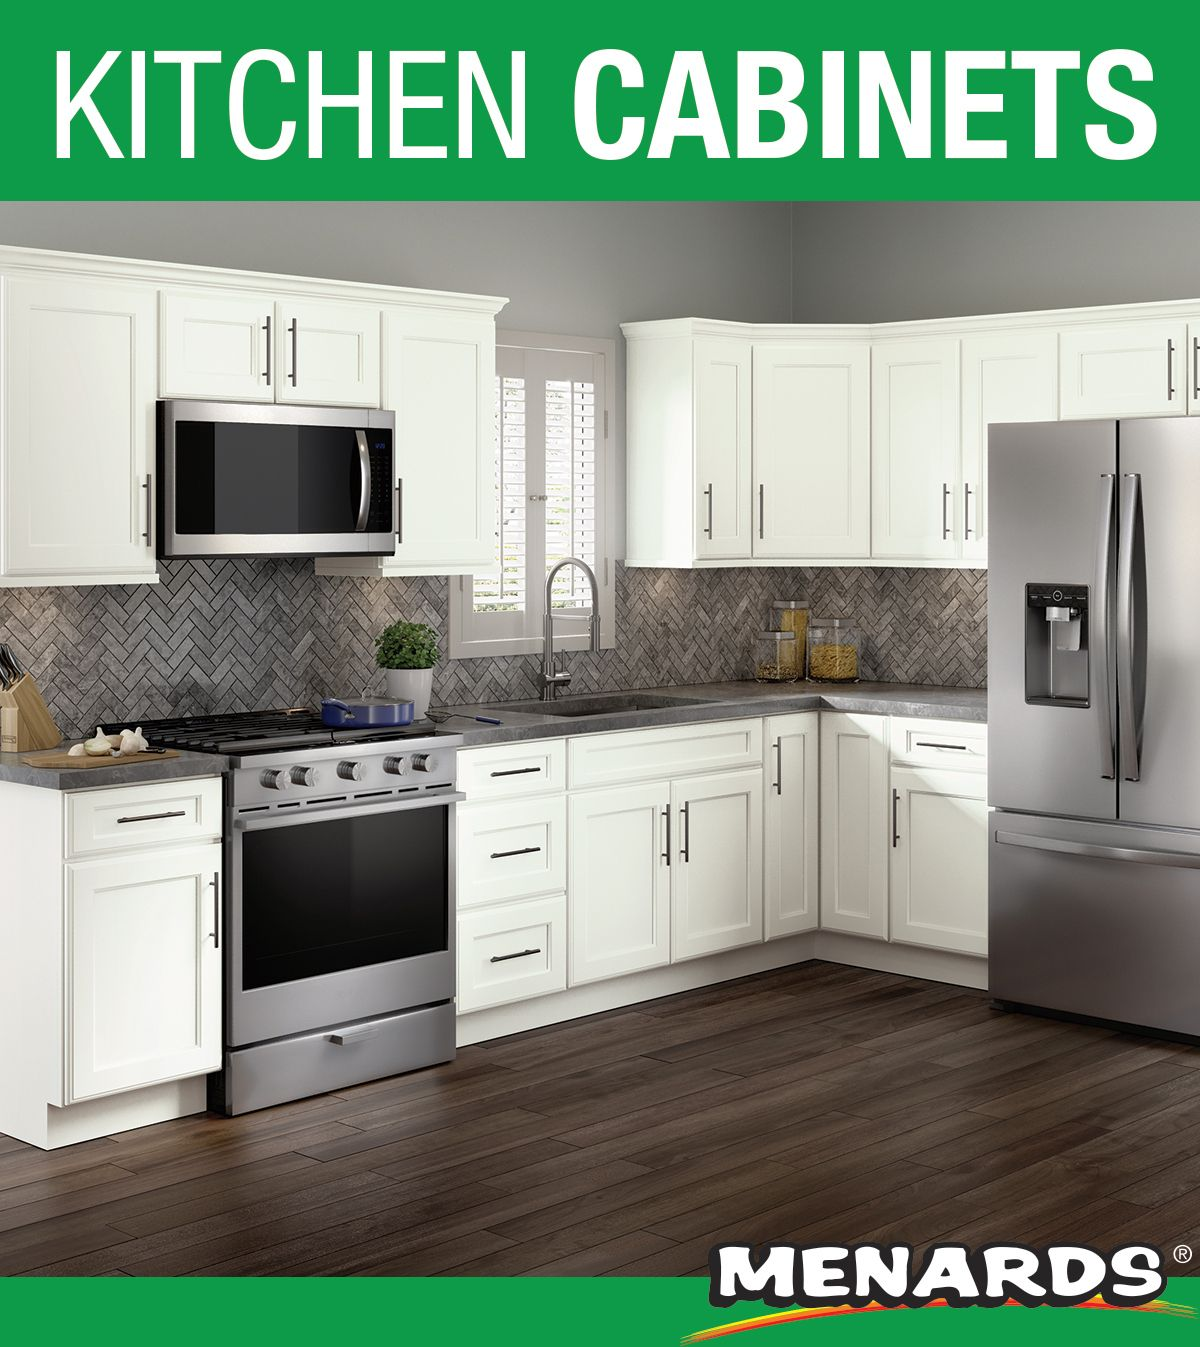 Cardell Designer Collection Rockney Dove White 19 L Kitchen Cabinets Only Menards Kitchen Top Kitchen Appliances Top Kitchen Appliance Brands